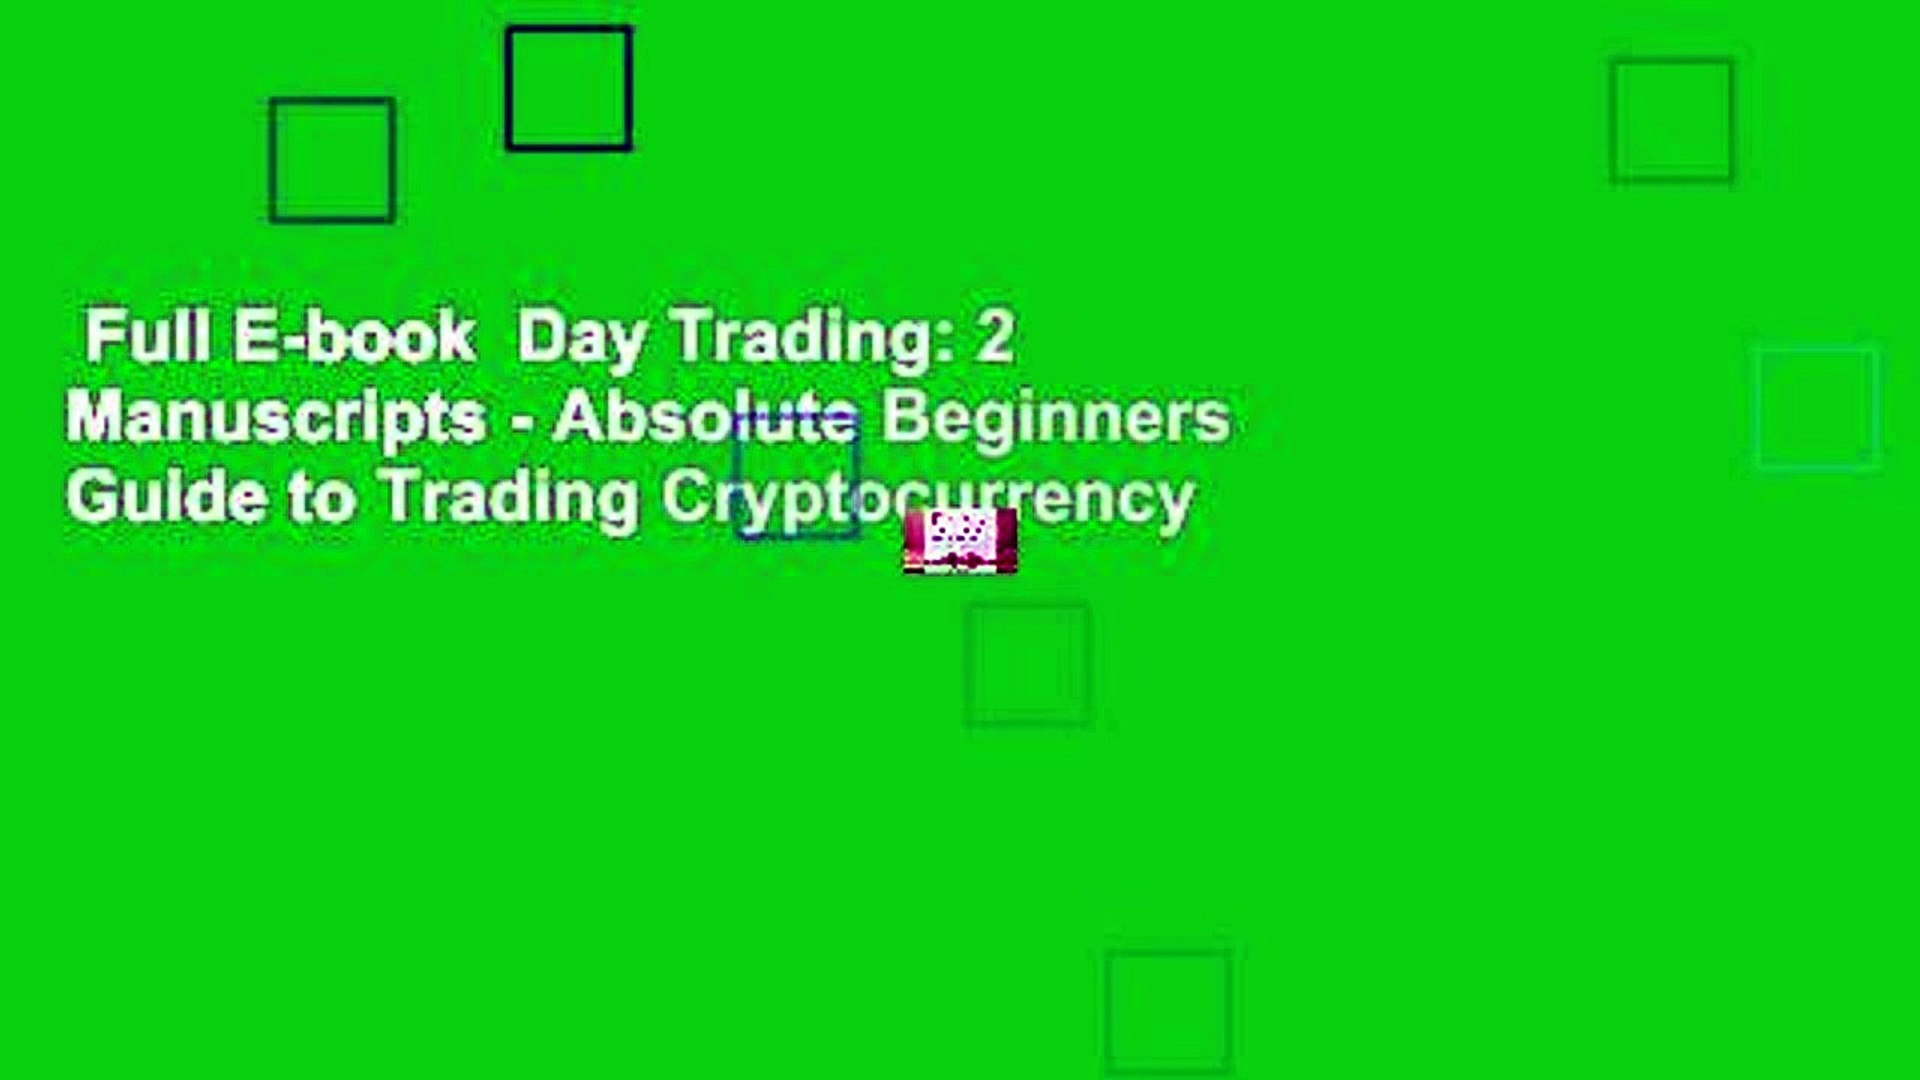 Full E-book  Day Trading: 2 Manuscripts - Absolute Beginners Guide to Trading Cryptocurrency